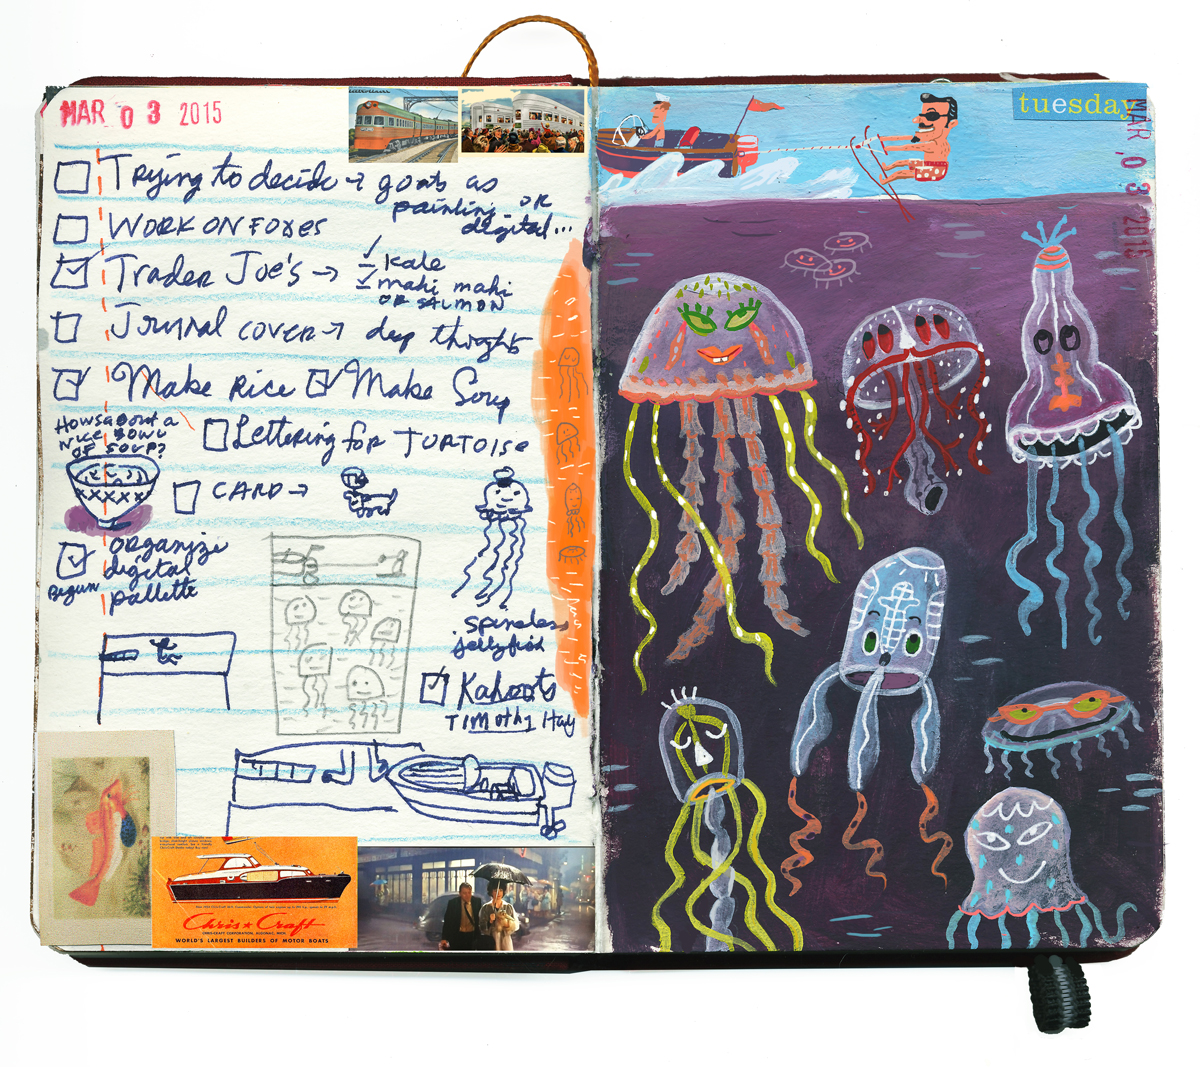 Spineless jellyfish sketchbook